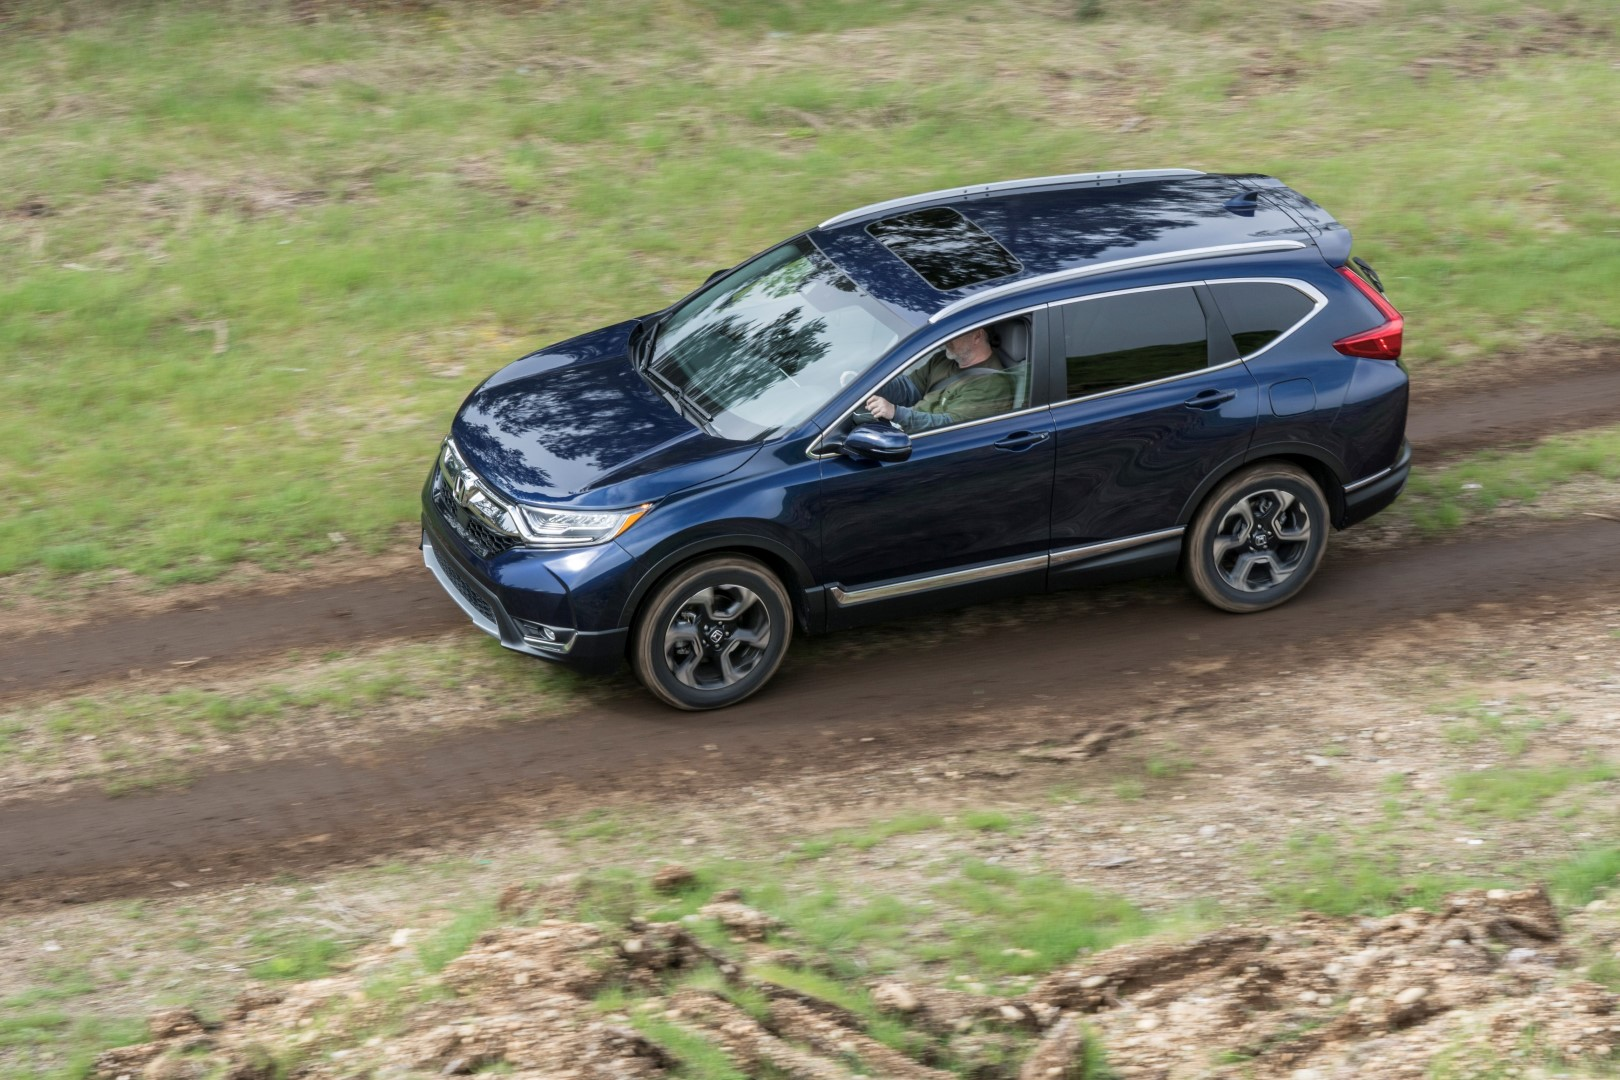 New Honda CR-V off road